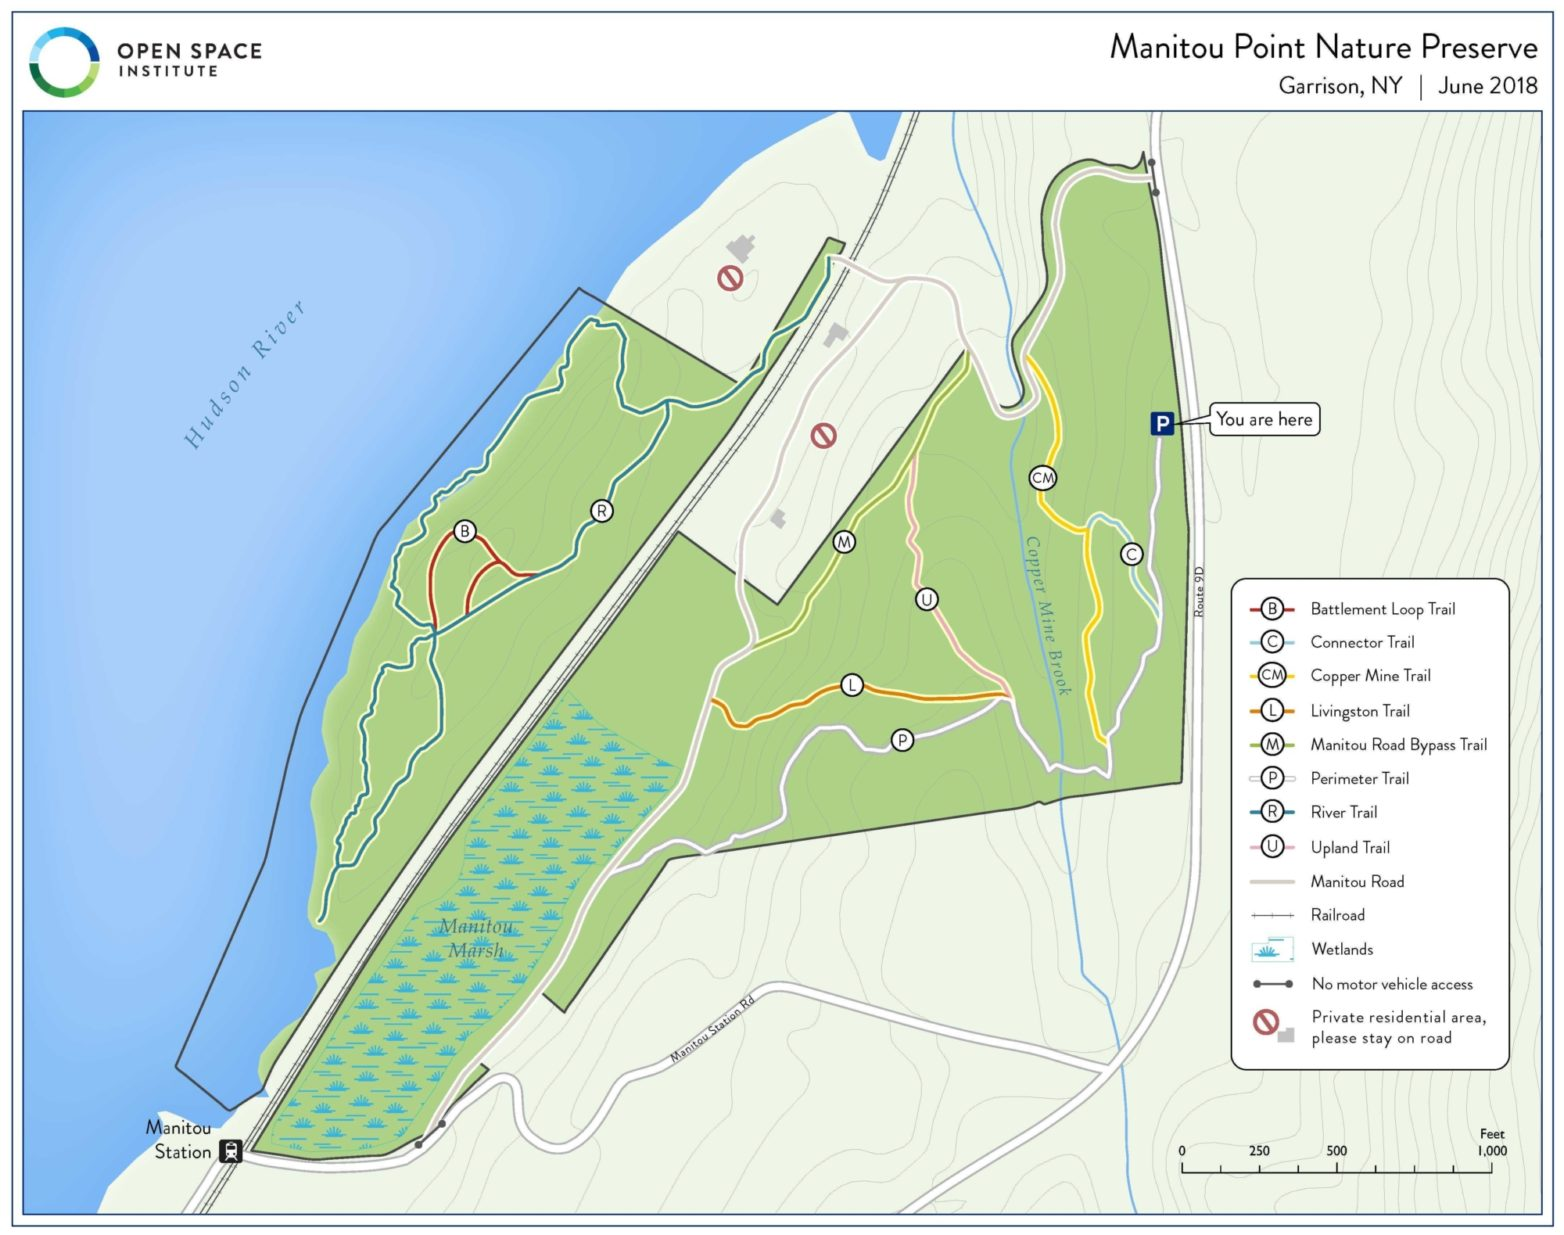 Trail and Access Upgrades at Manitou Point Preserve - Open